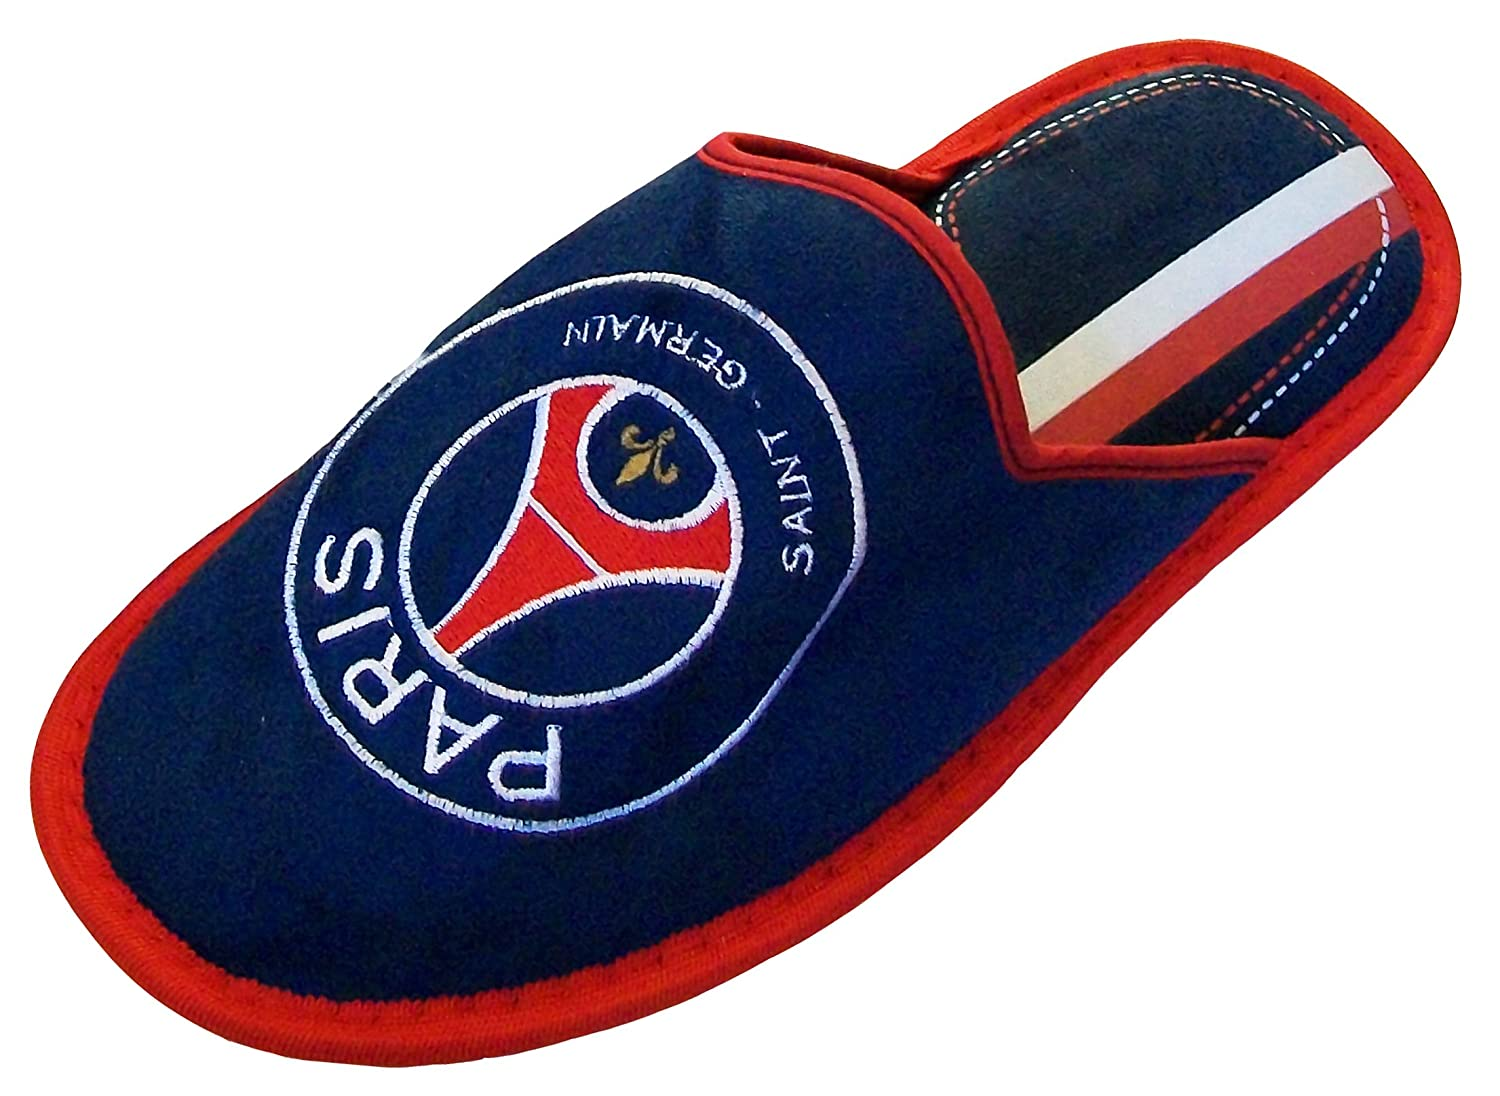 Chaussons bébé garçon PSG - Collection officielle PARIS SAINT GERMAIN